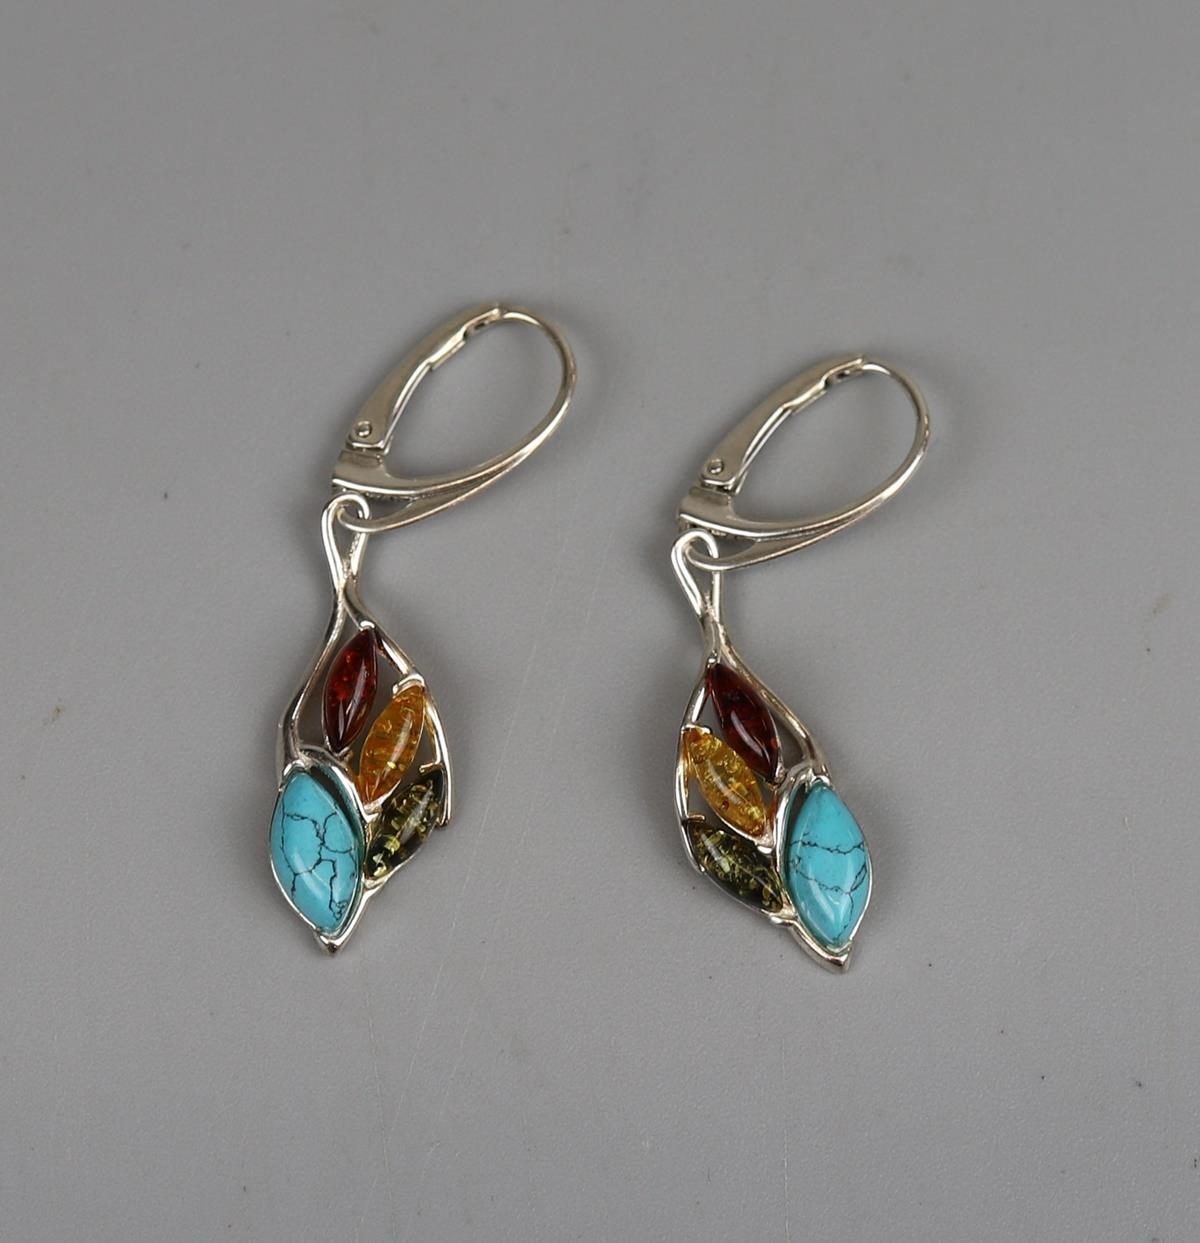 Pair of silver, turquois & amber earrings